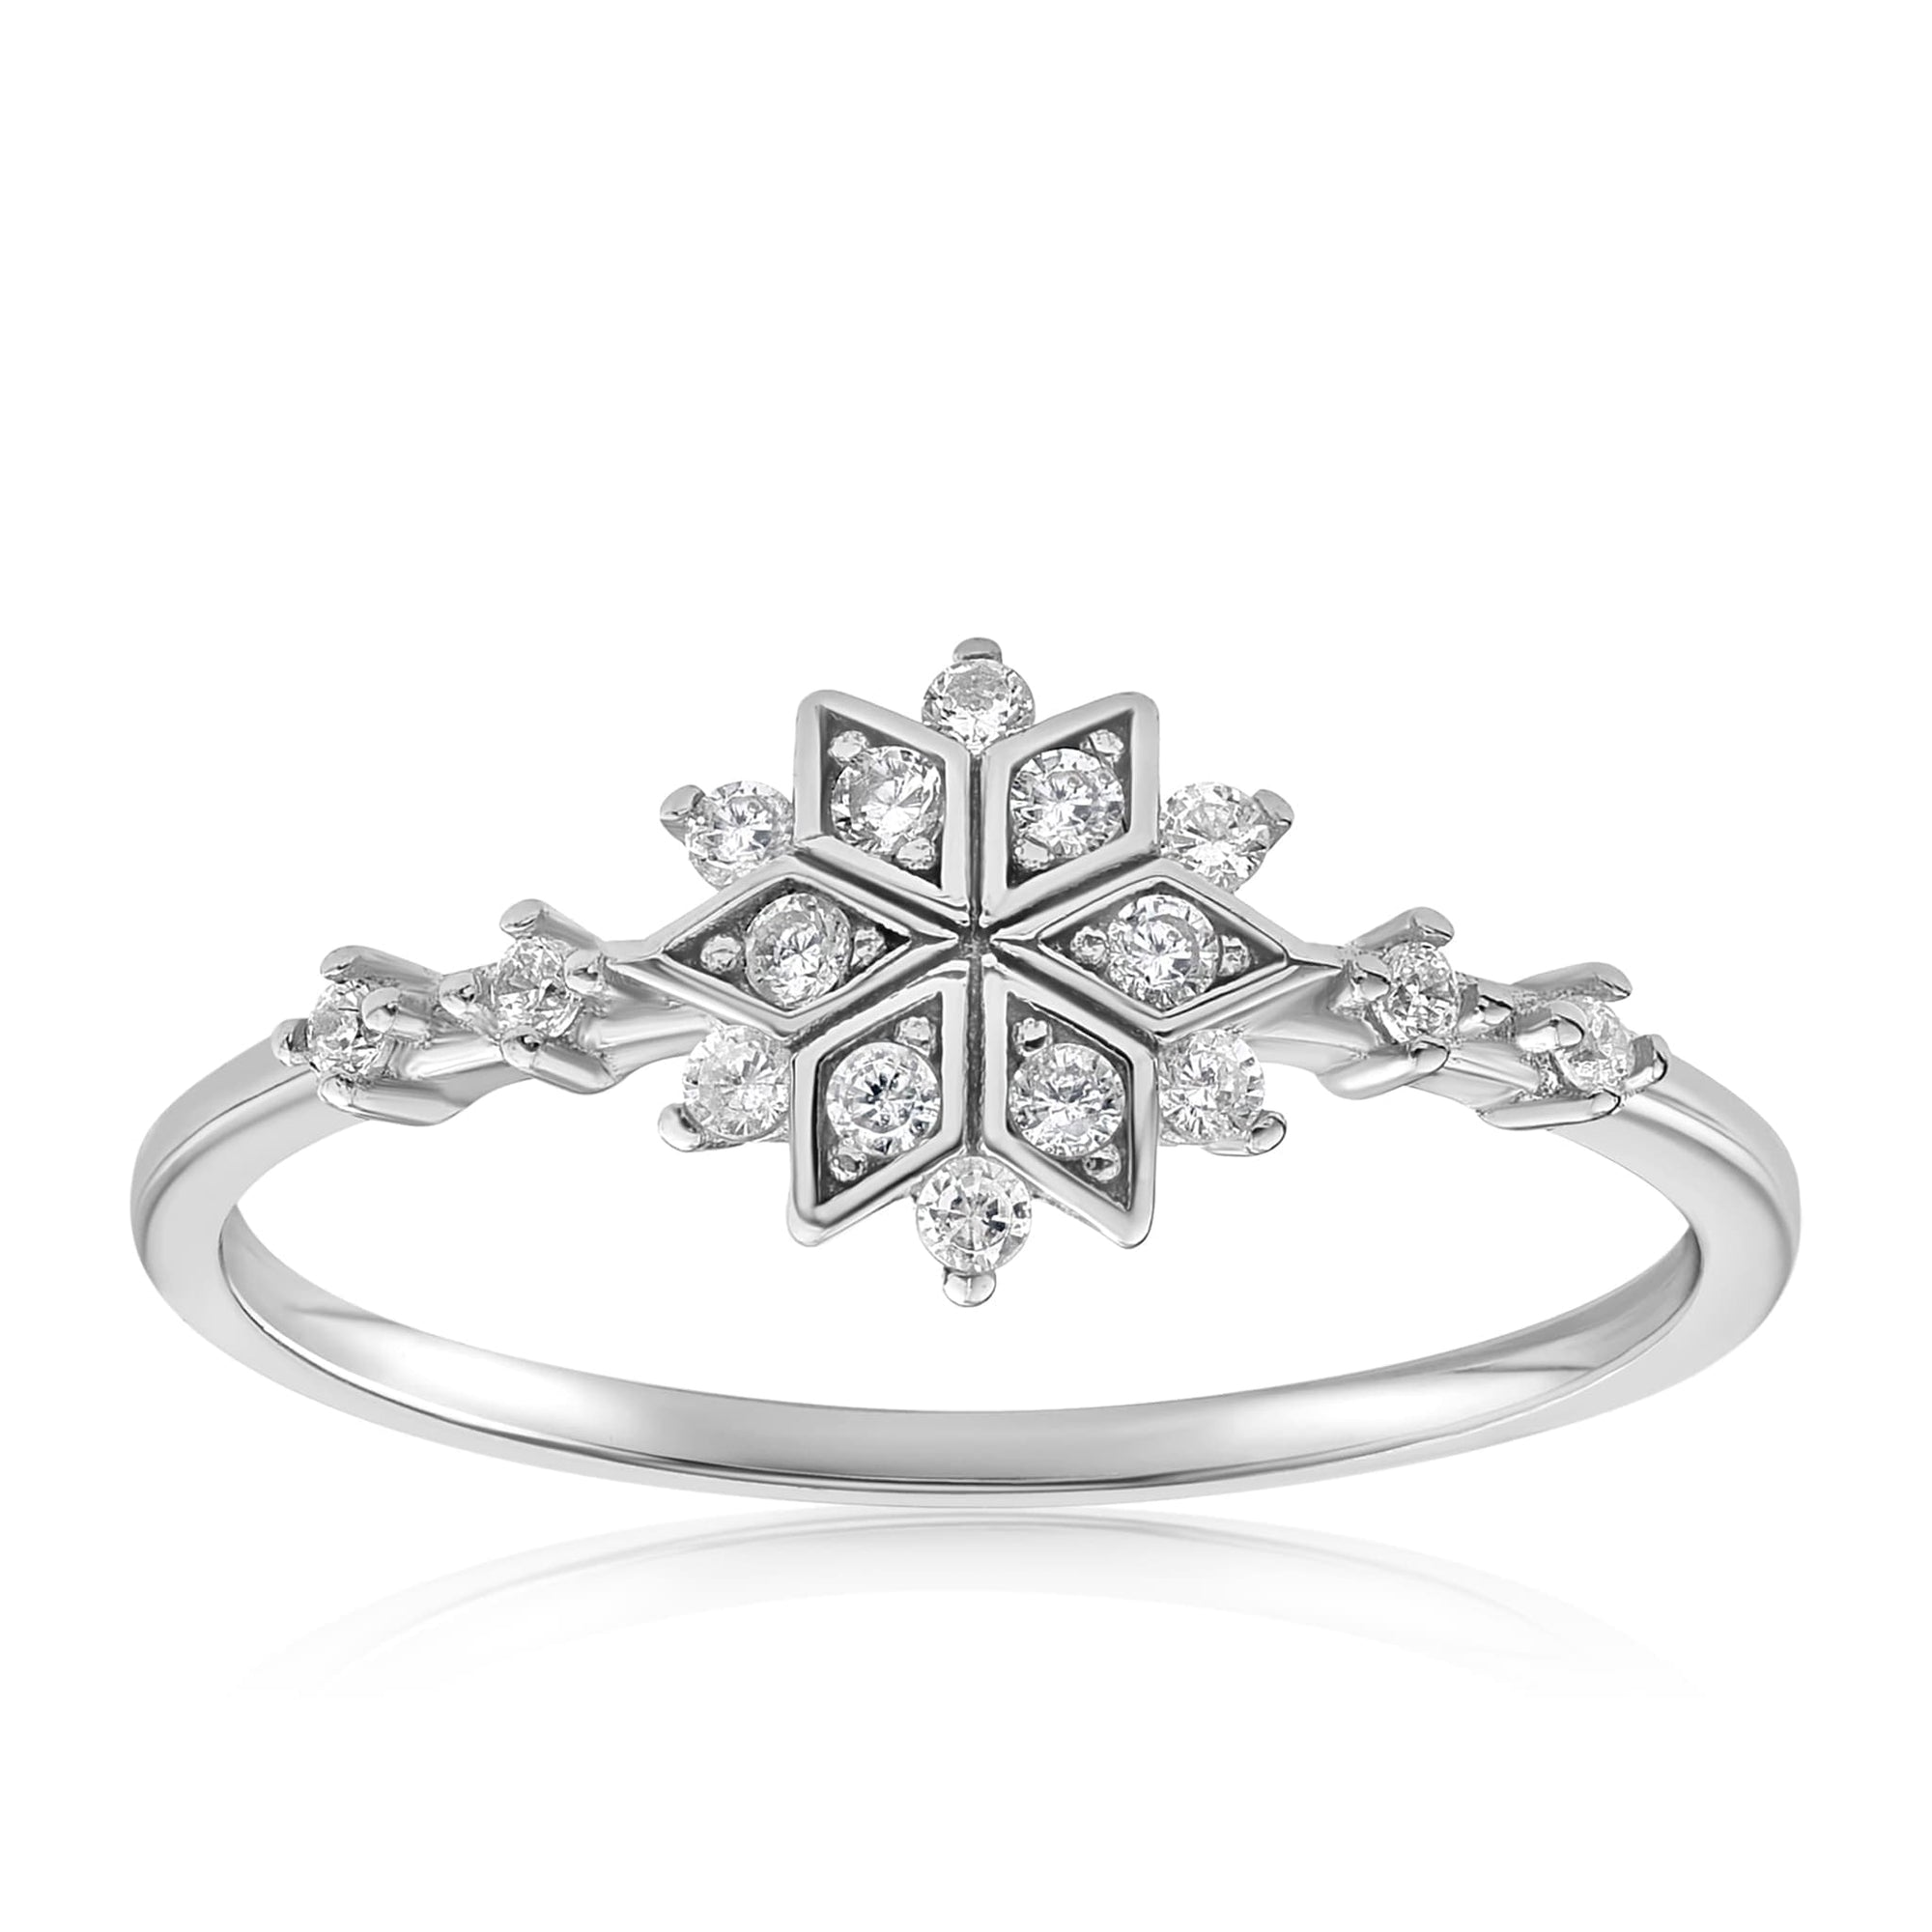 Sophia Snowflake Ring - Front View Facing Up - 925 Sterling Silver